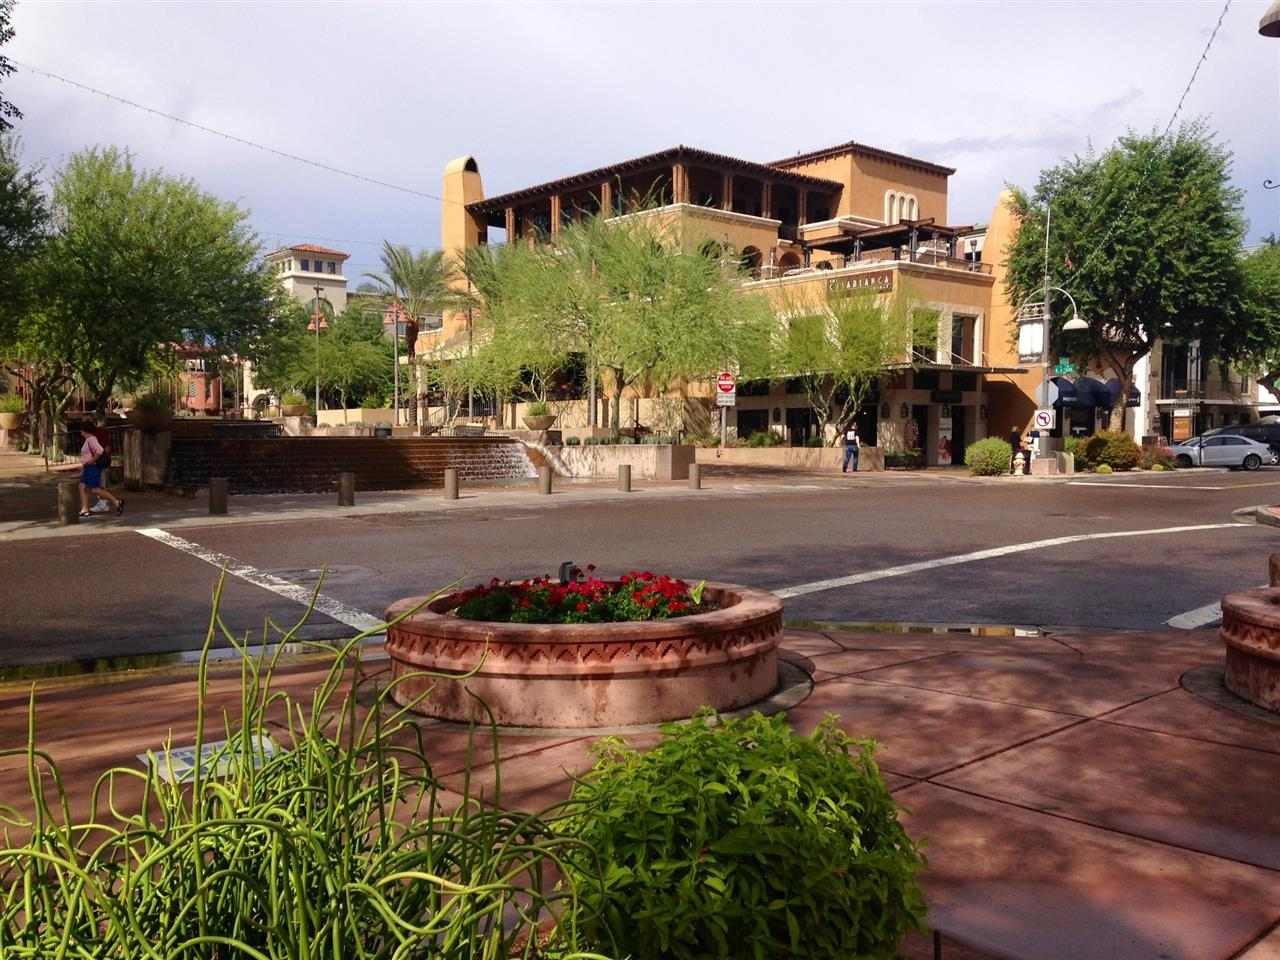 There are so many restaurants to choose from in downtown #Scottsdale#Arizona